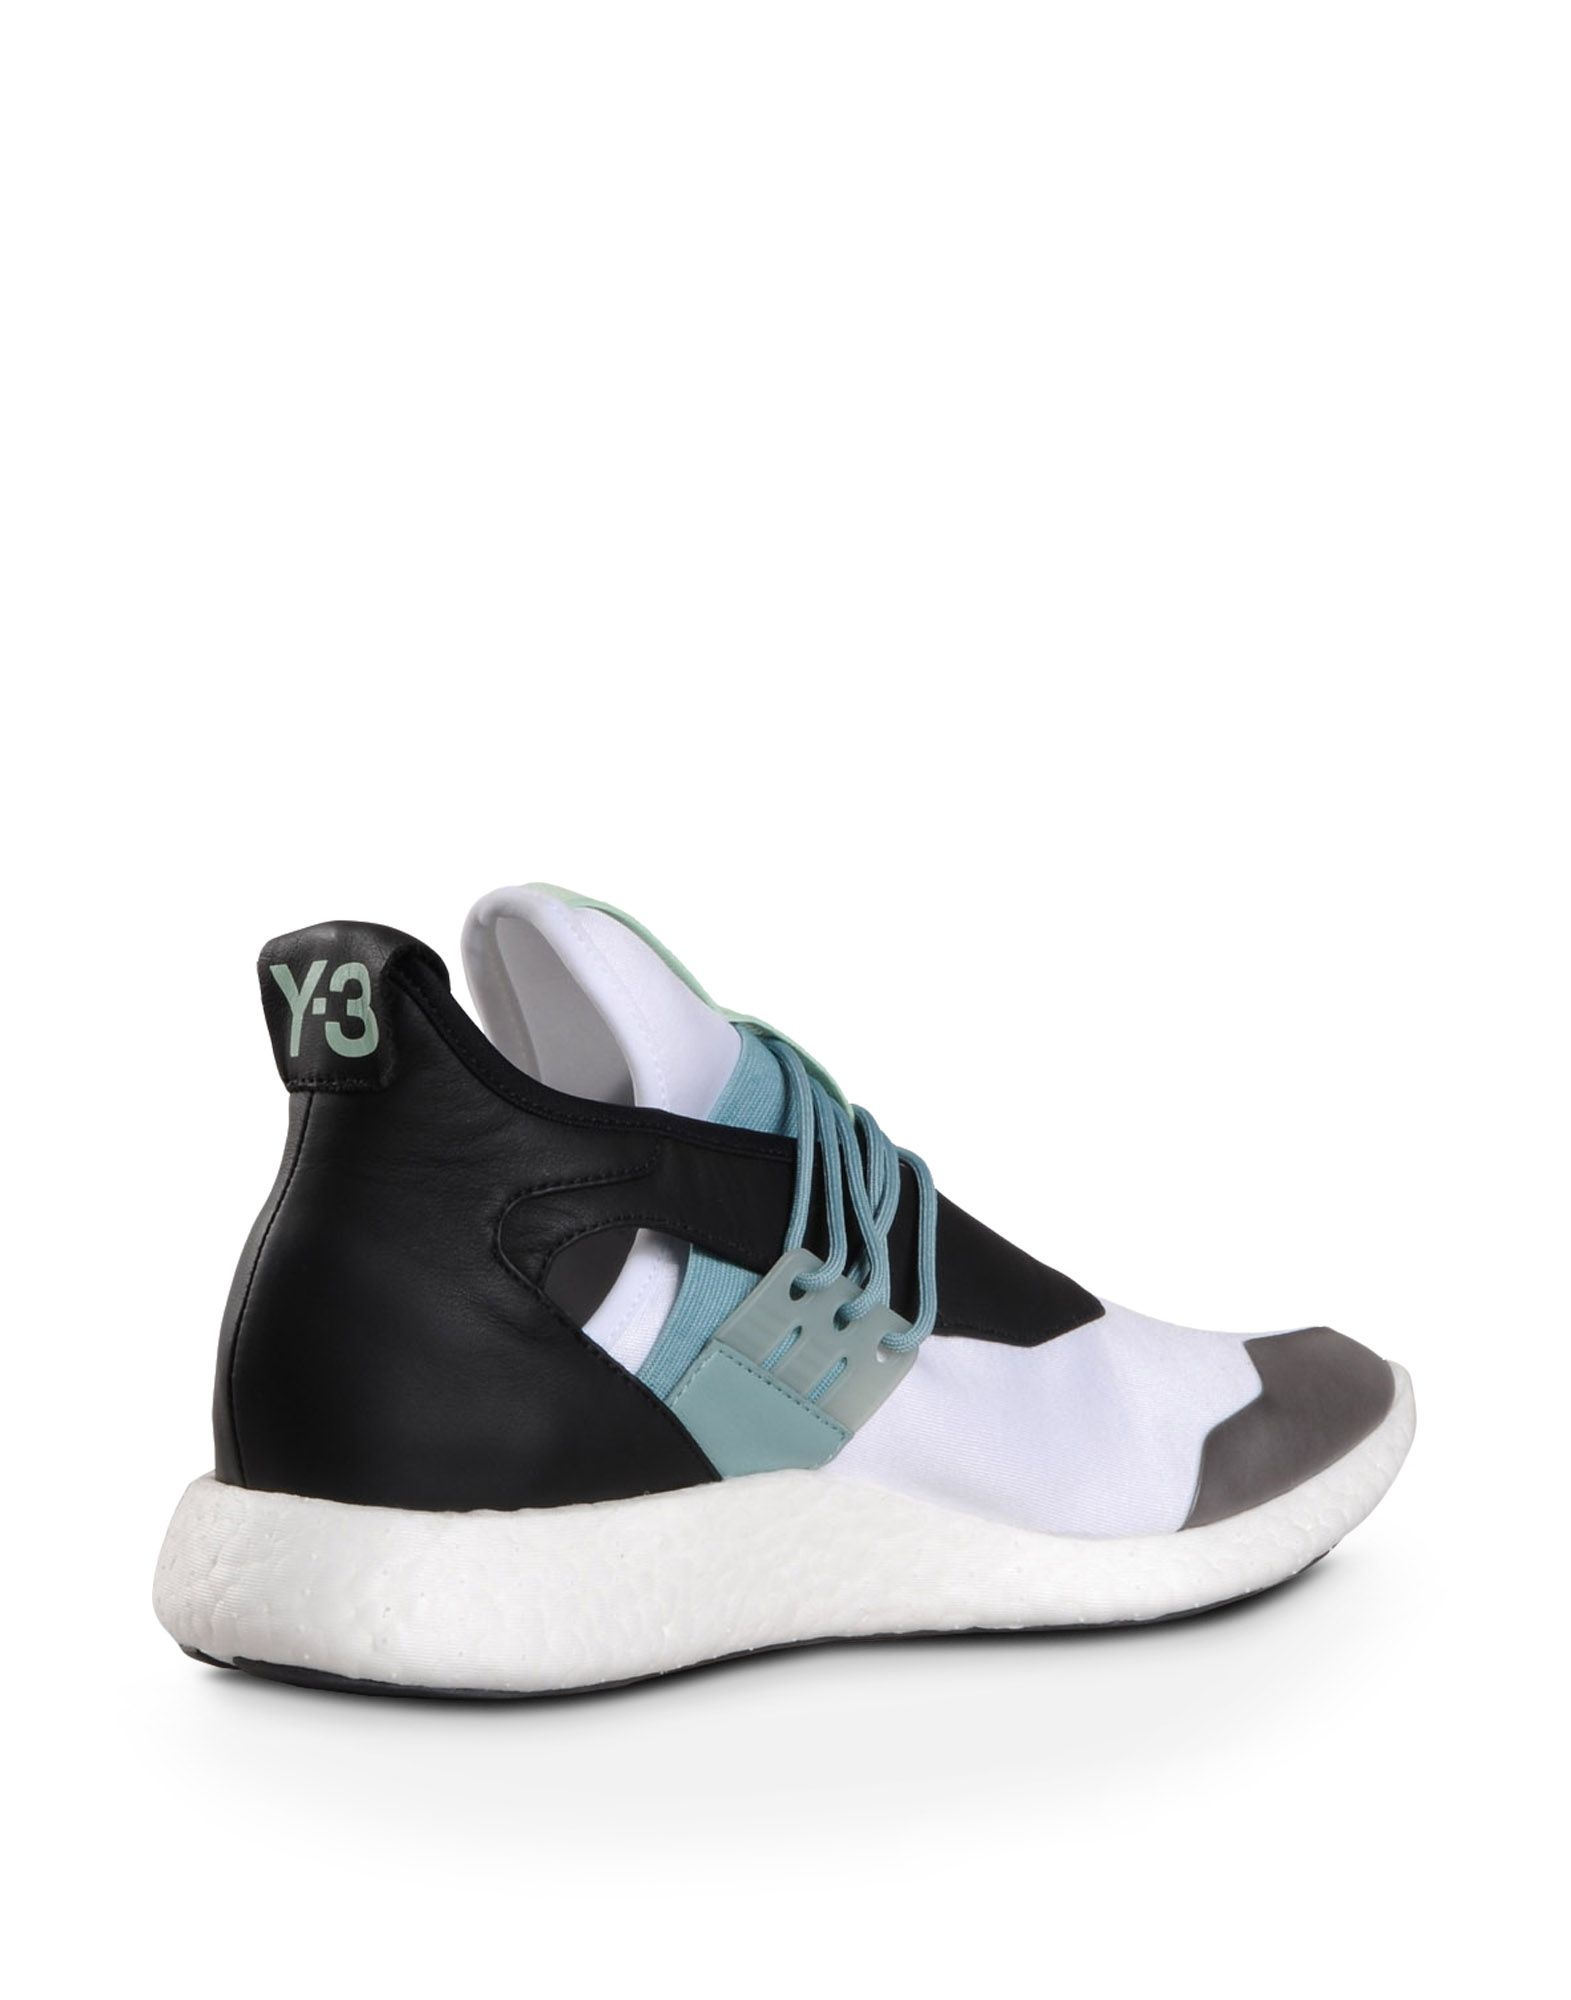 Y 3 Y 3 Elle Run Sneakers X94T3Dn6